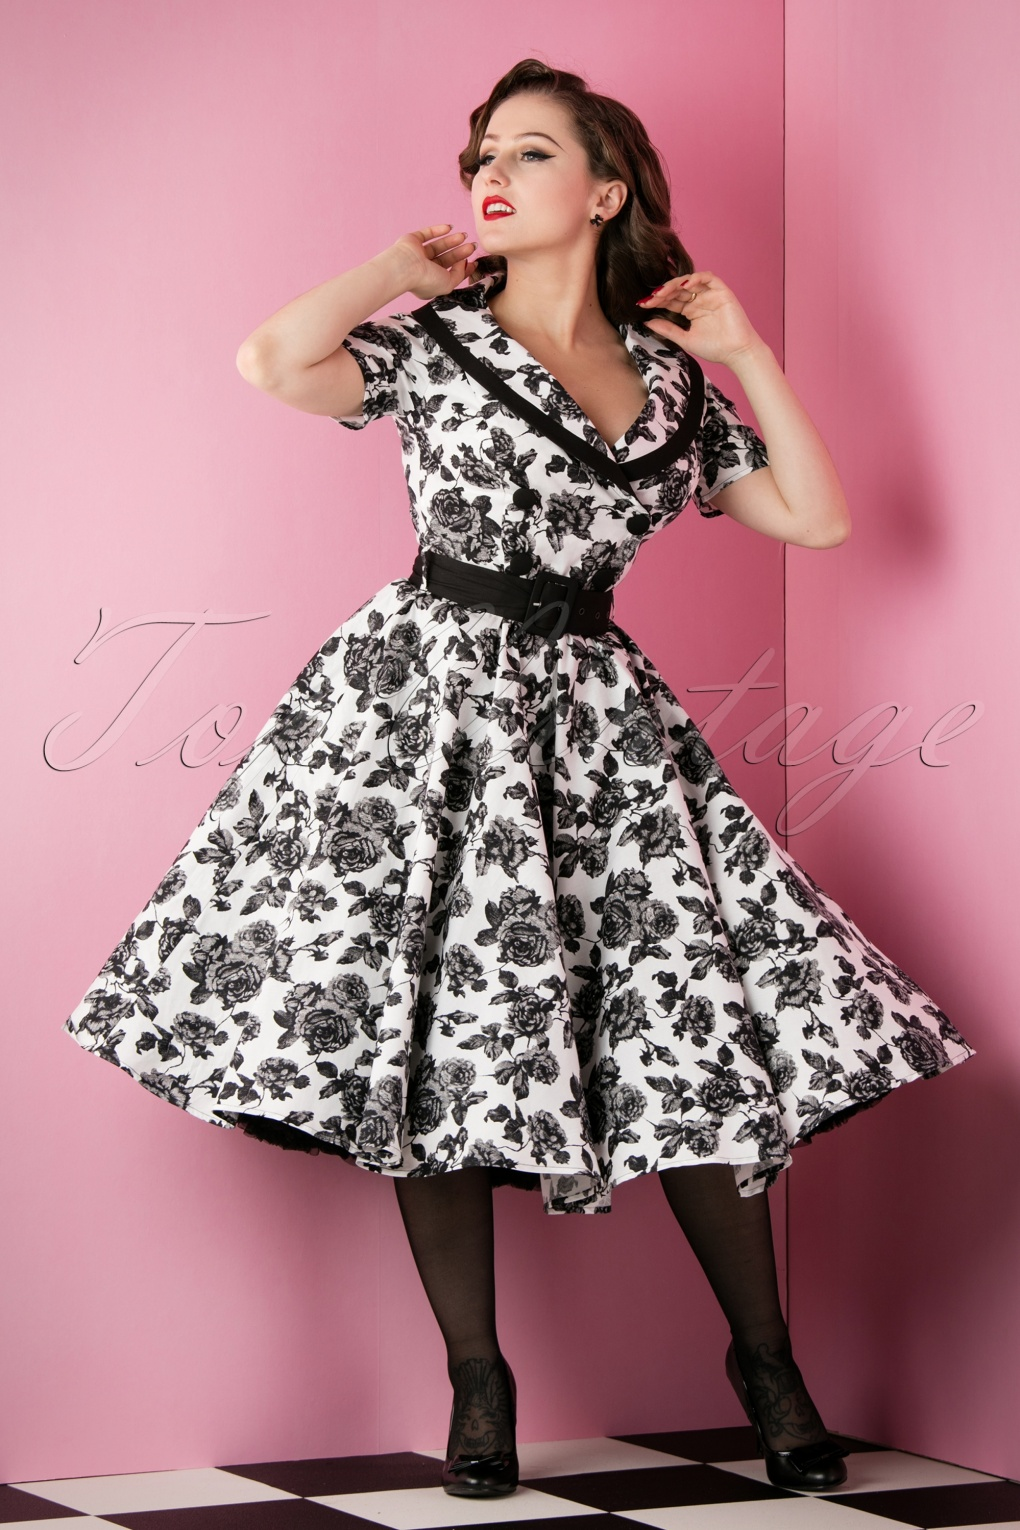 Vintage Inspired Cocktail Dresses, Party Dresses 50s Honor Floral Swing Dress in Black and Ivory £52.64 AT vintagedancer.com